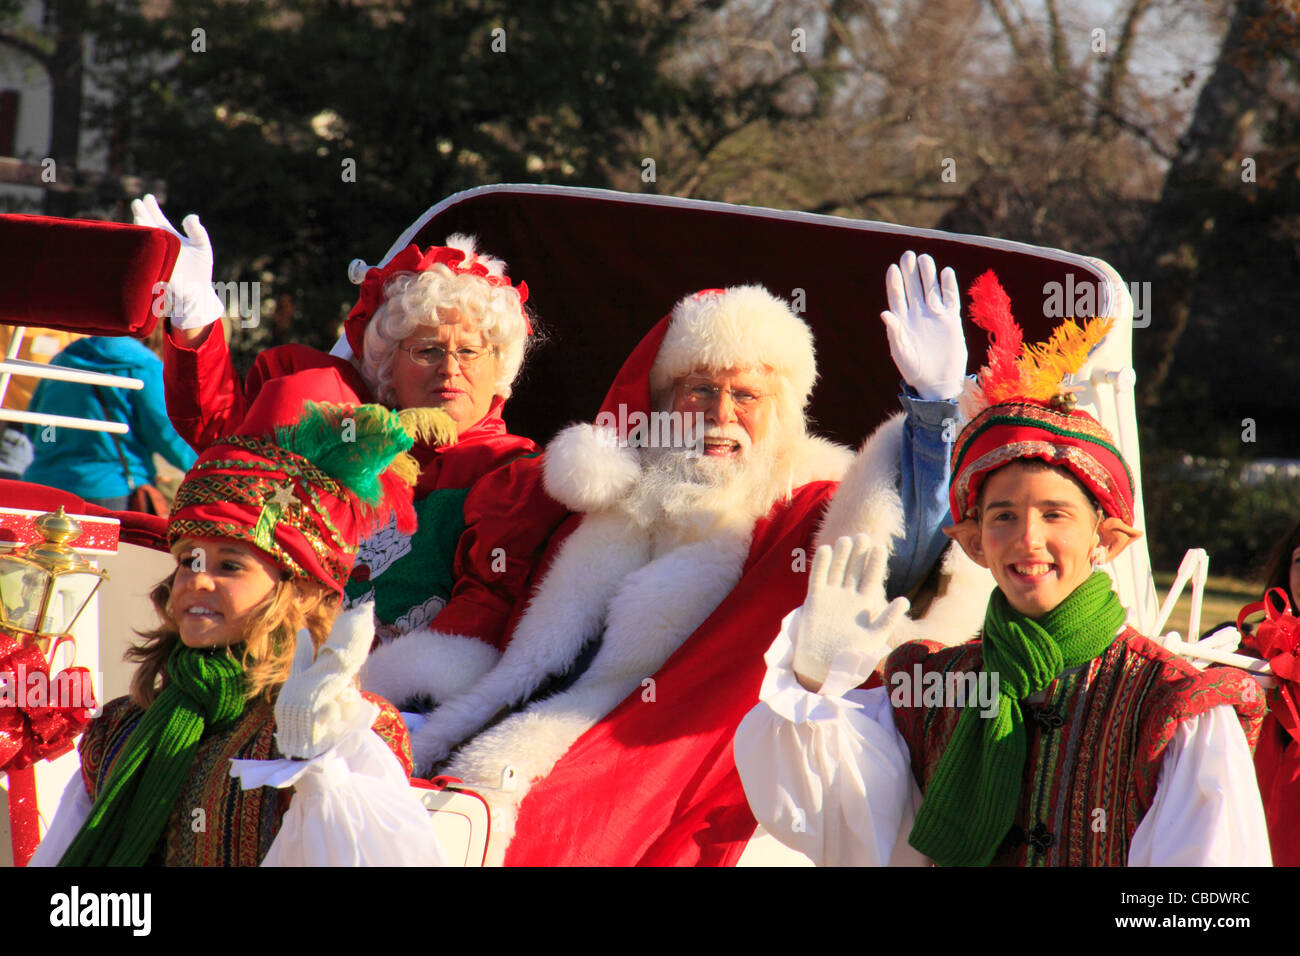 How To Watch The Williamsburg Christmas Parade 2021 Page 2 Christmas Parade High Resolution Stock Photography And Images Alamy